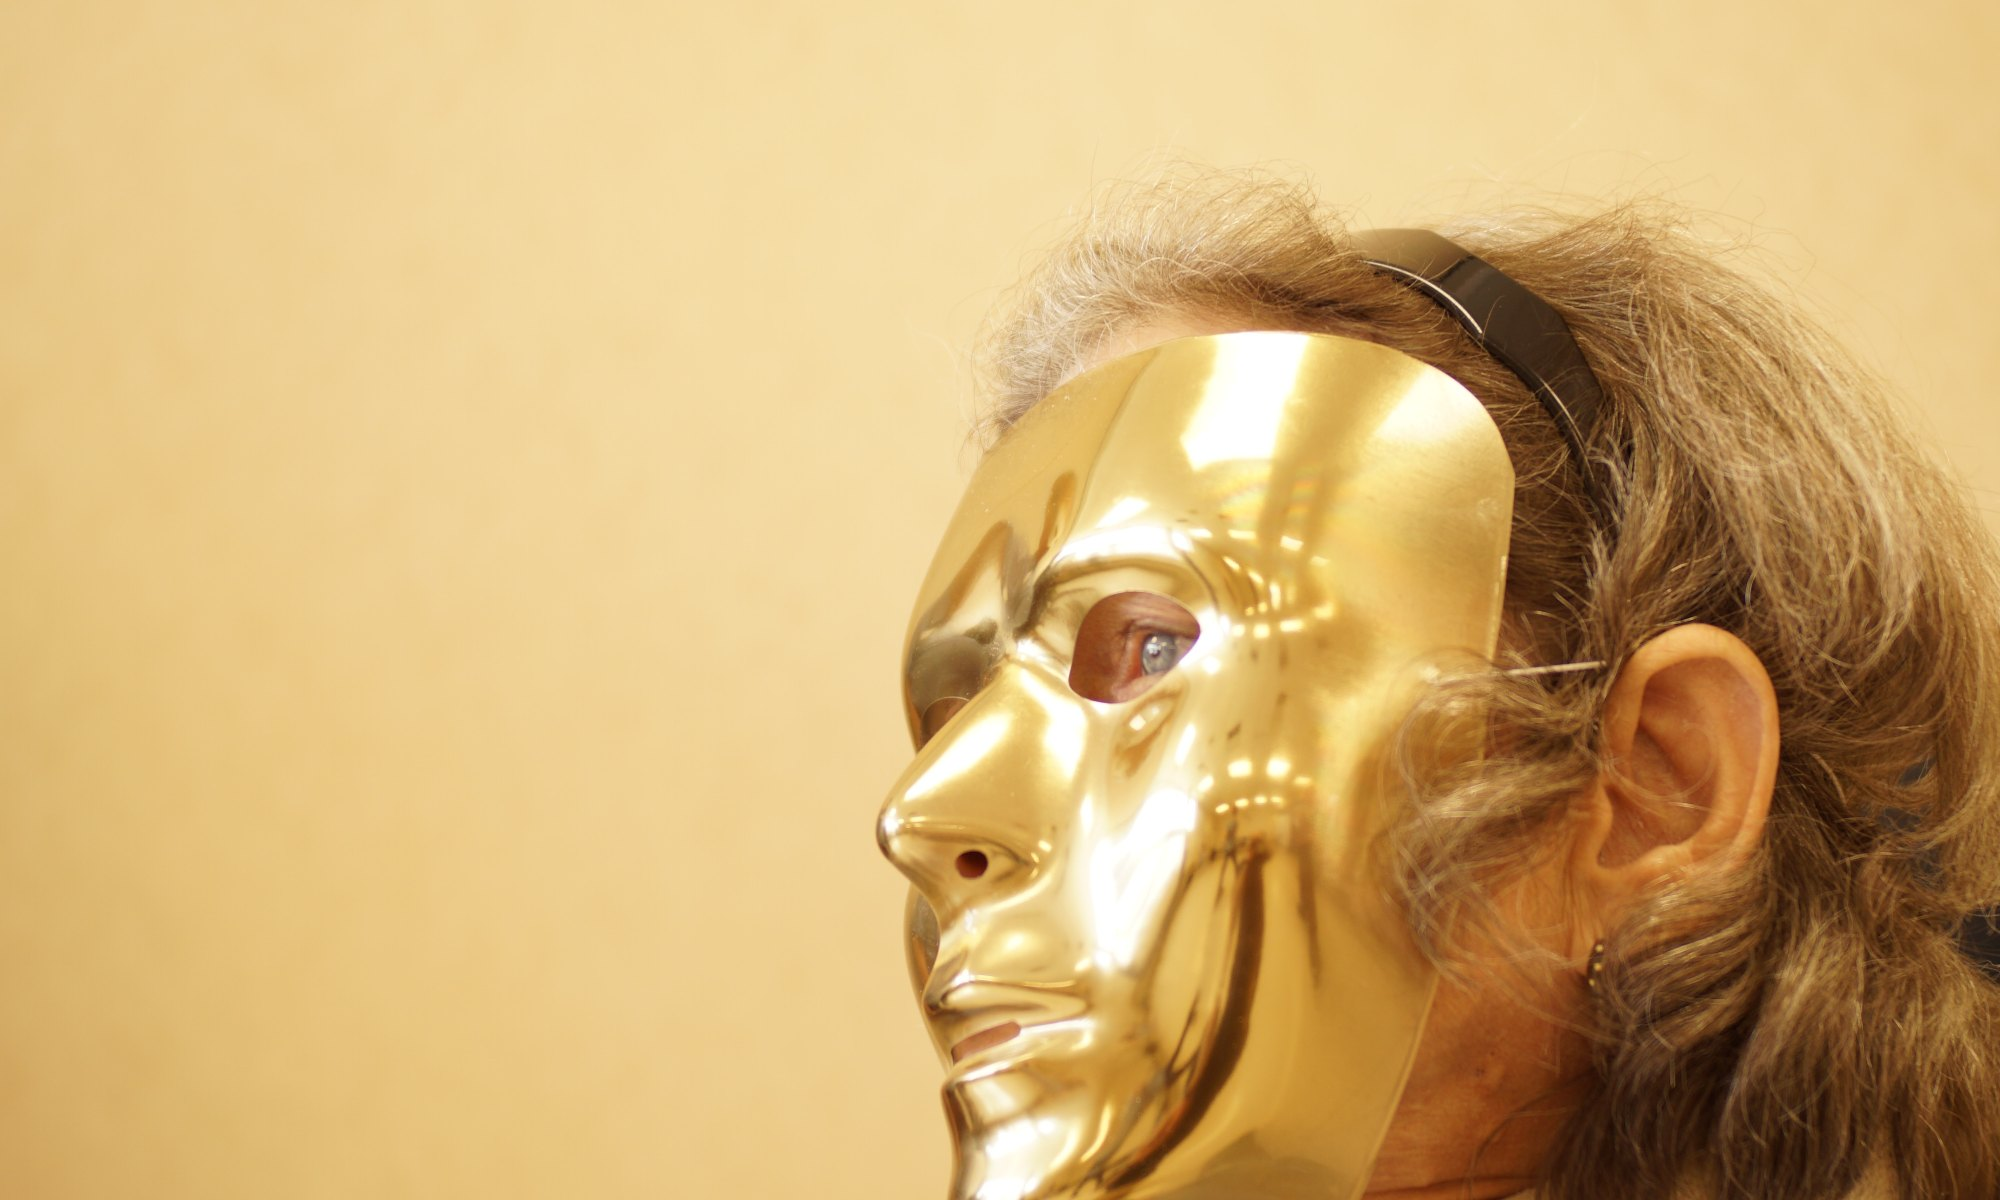 Person demonstrating theory of mind by wearing a gold mask